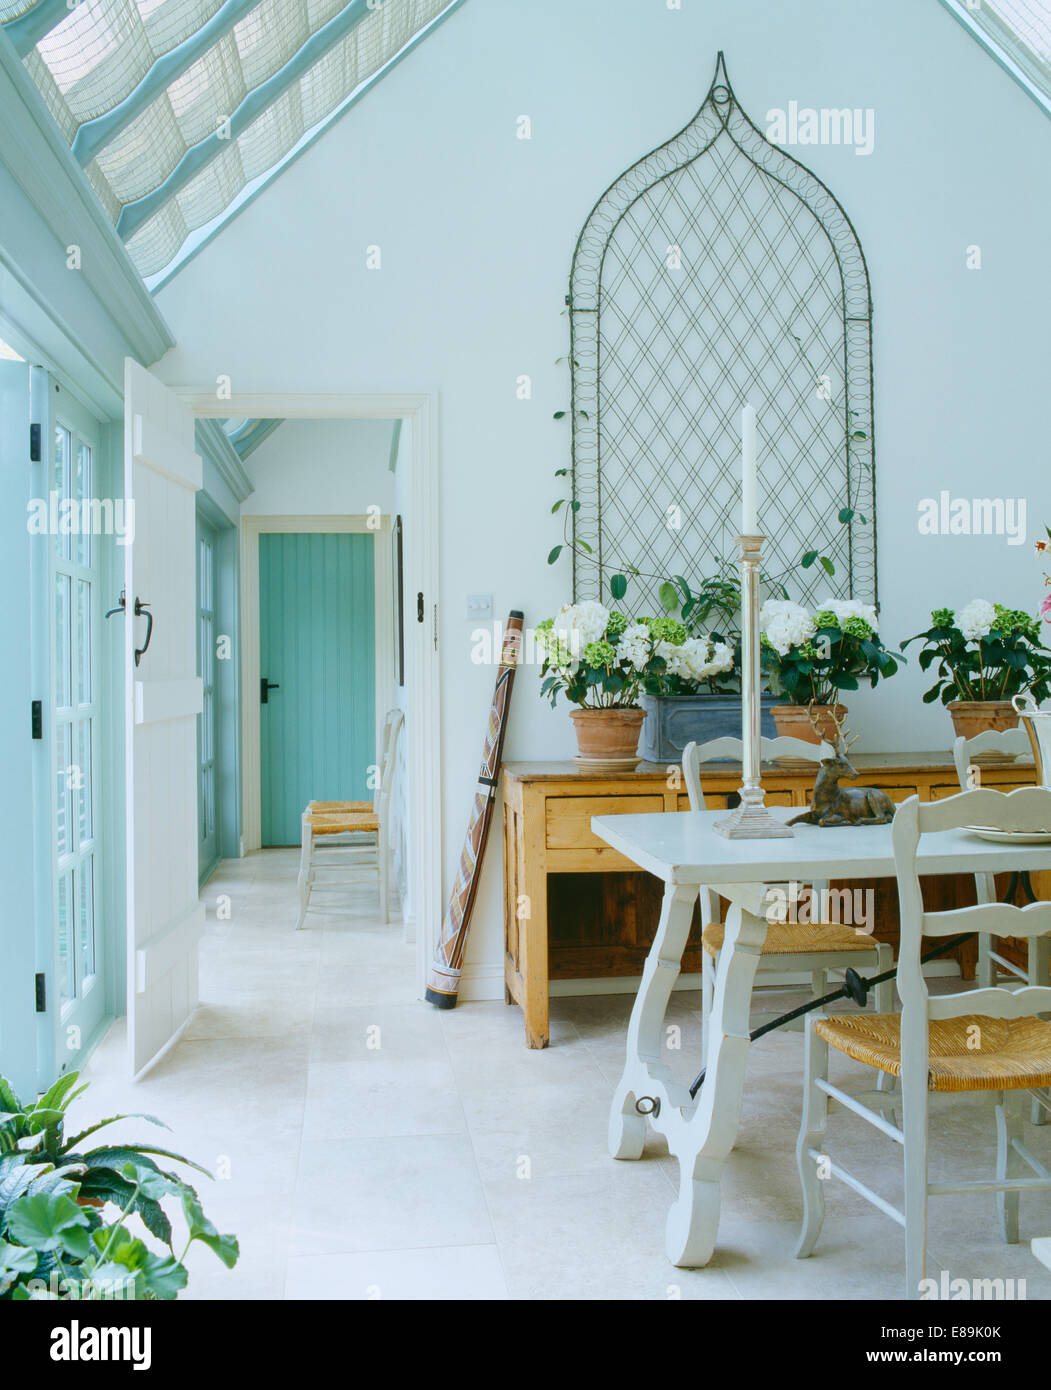 Metal Ogee Trellis On Wall Above Sideboard In White Conservatory Dining Room With Travertine Flooring